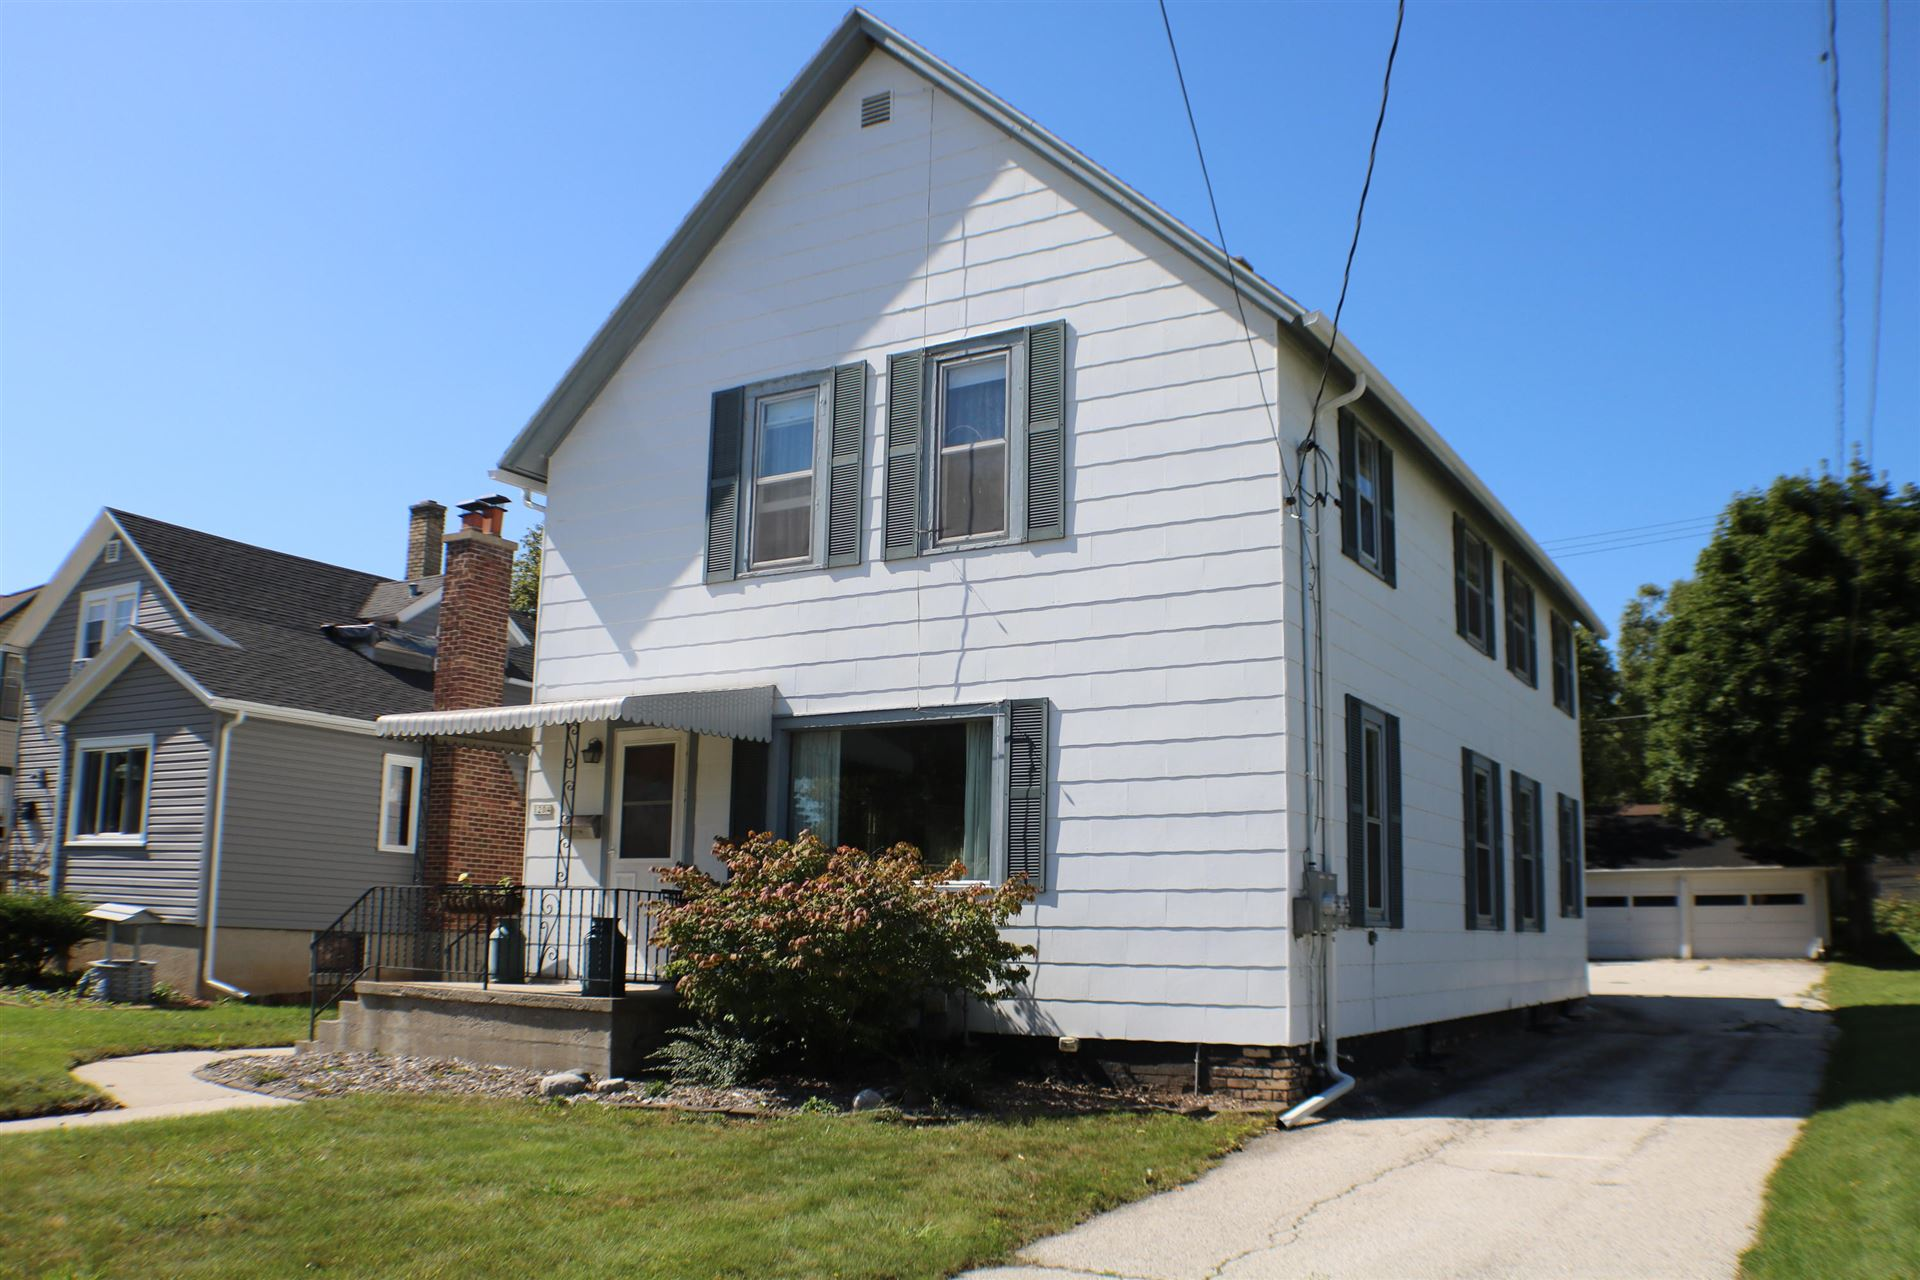 1204 N 8th St, Manitowoc, WI 54220 - #: 1659323